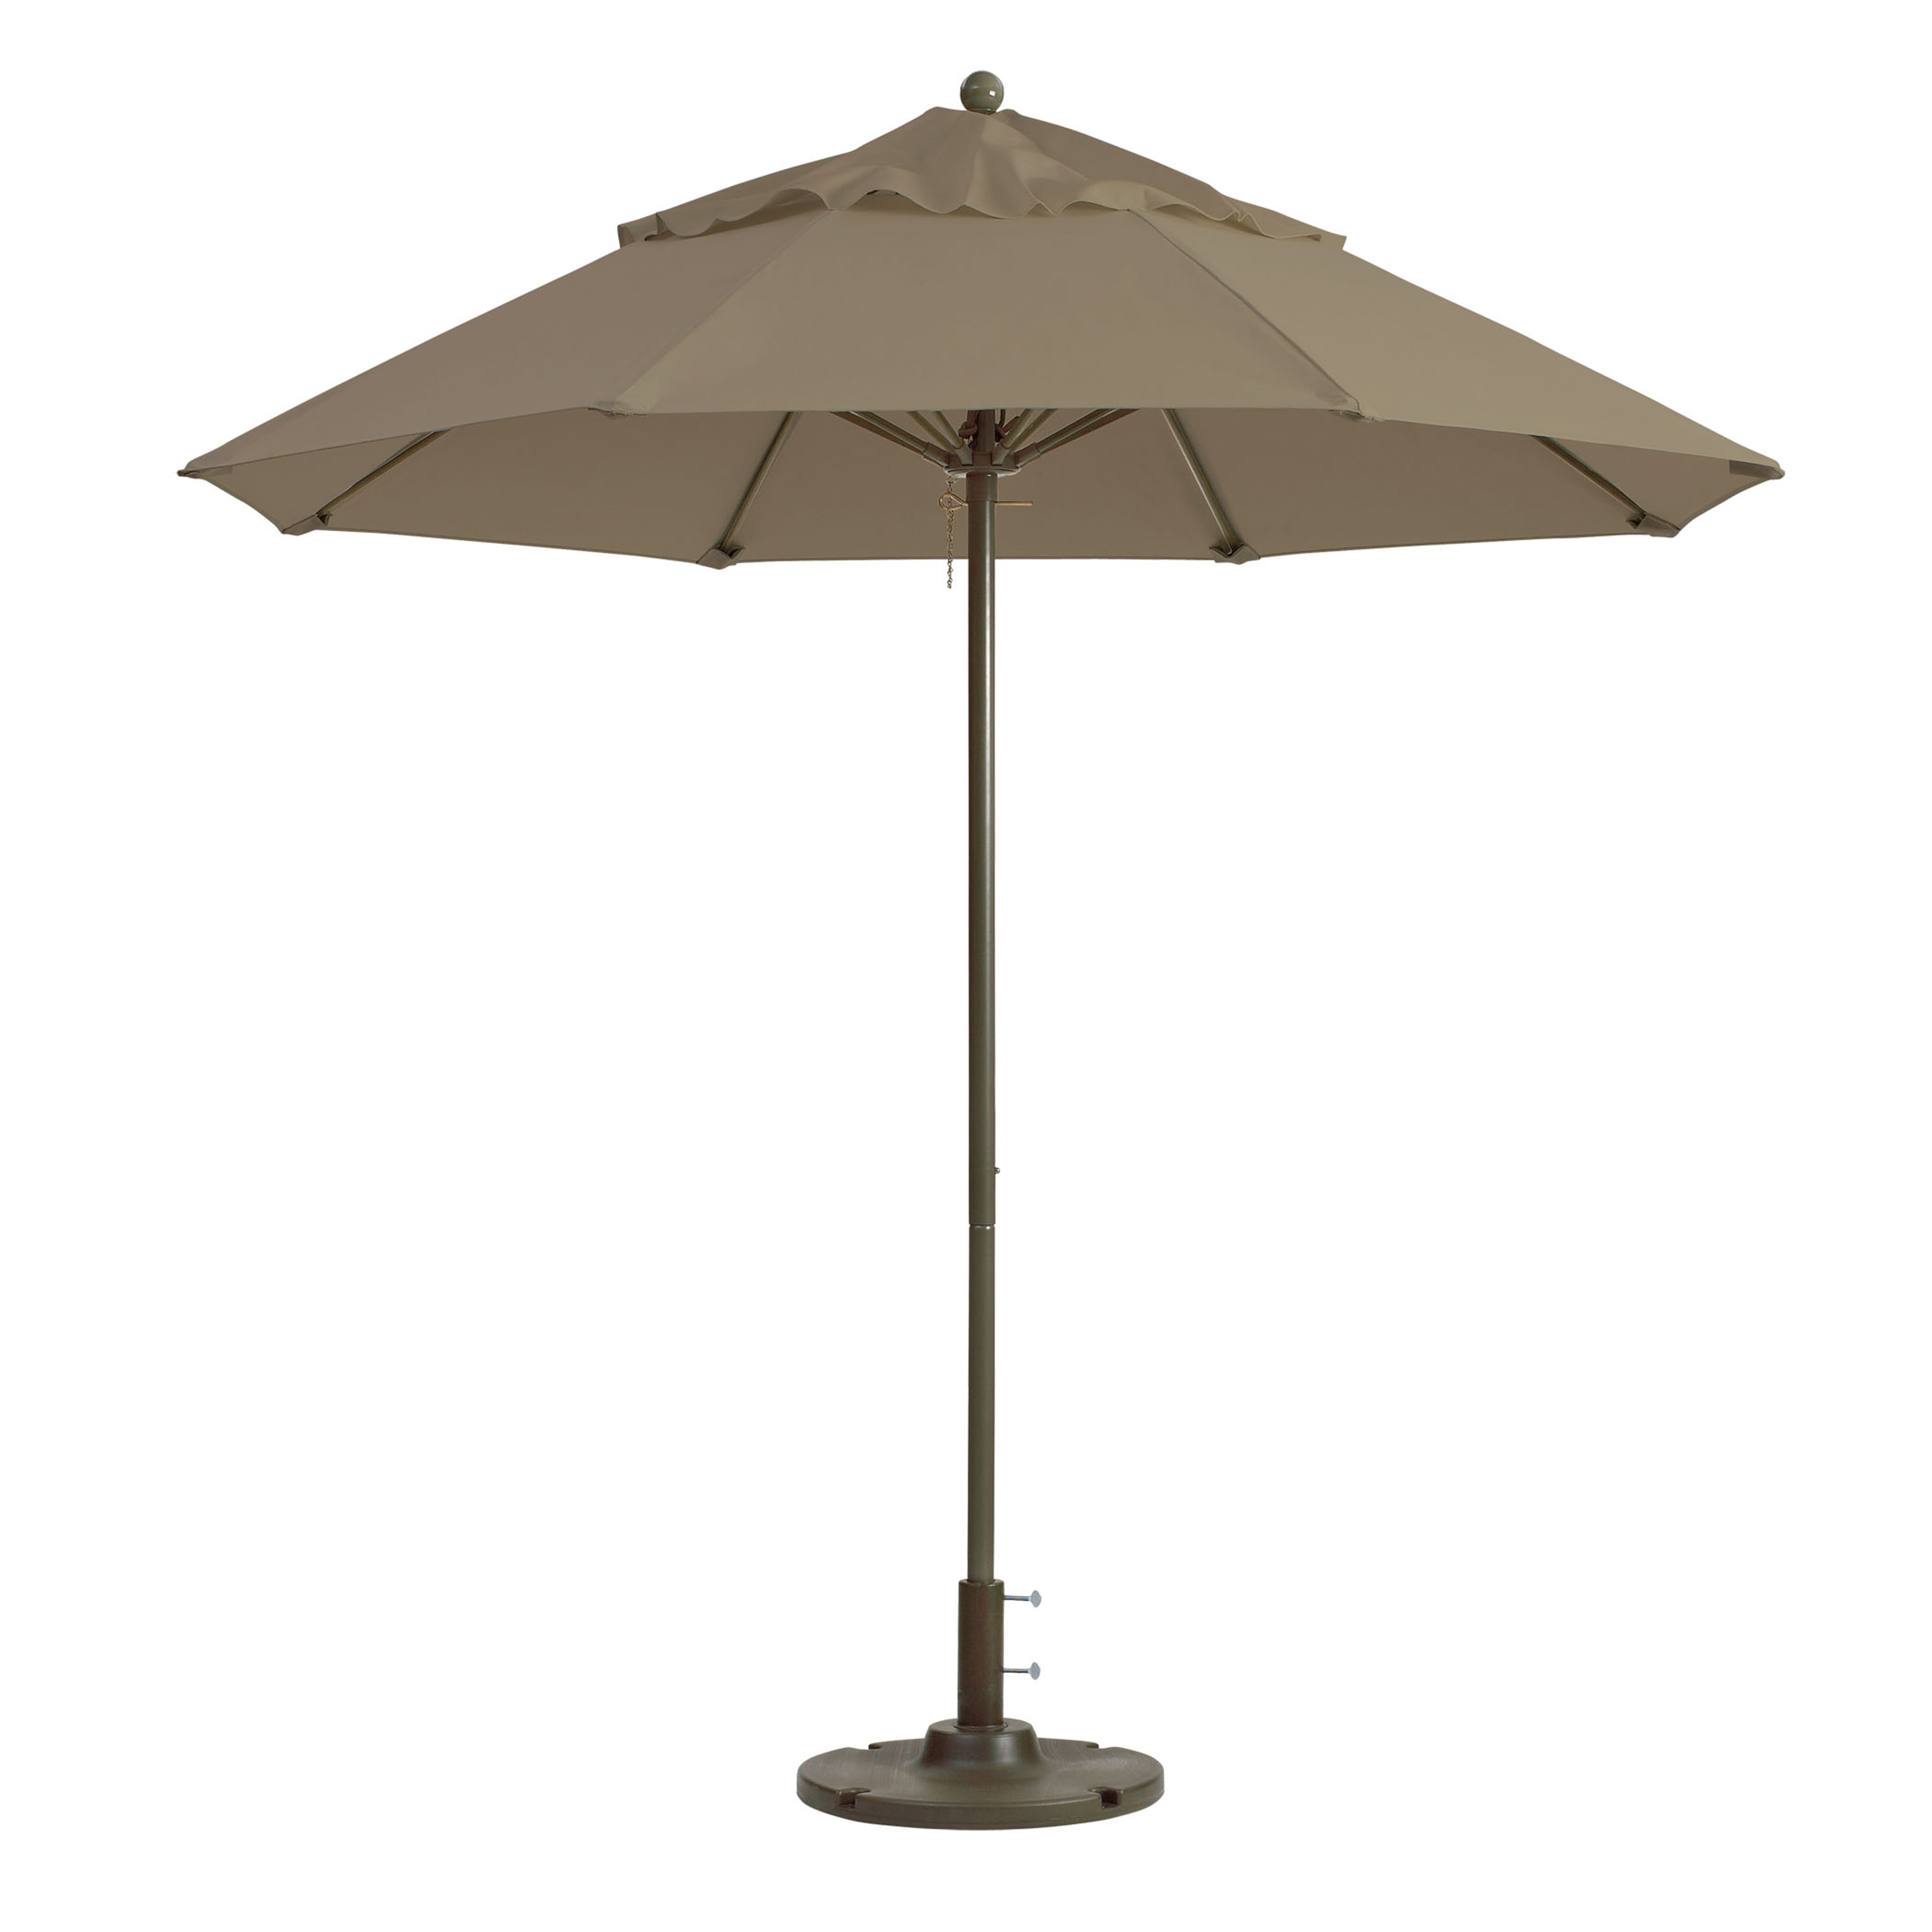 Grosfillex 98358131 umbrella